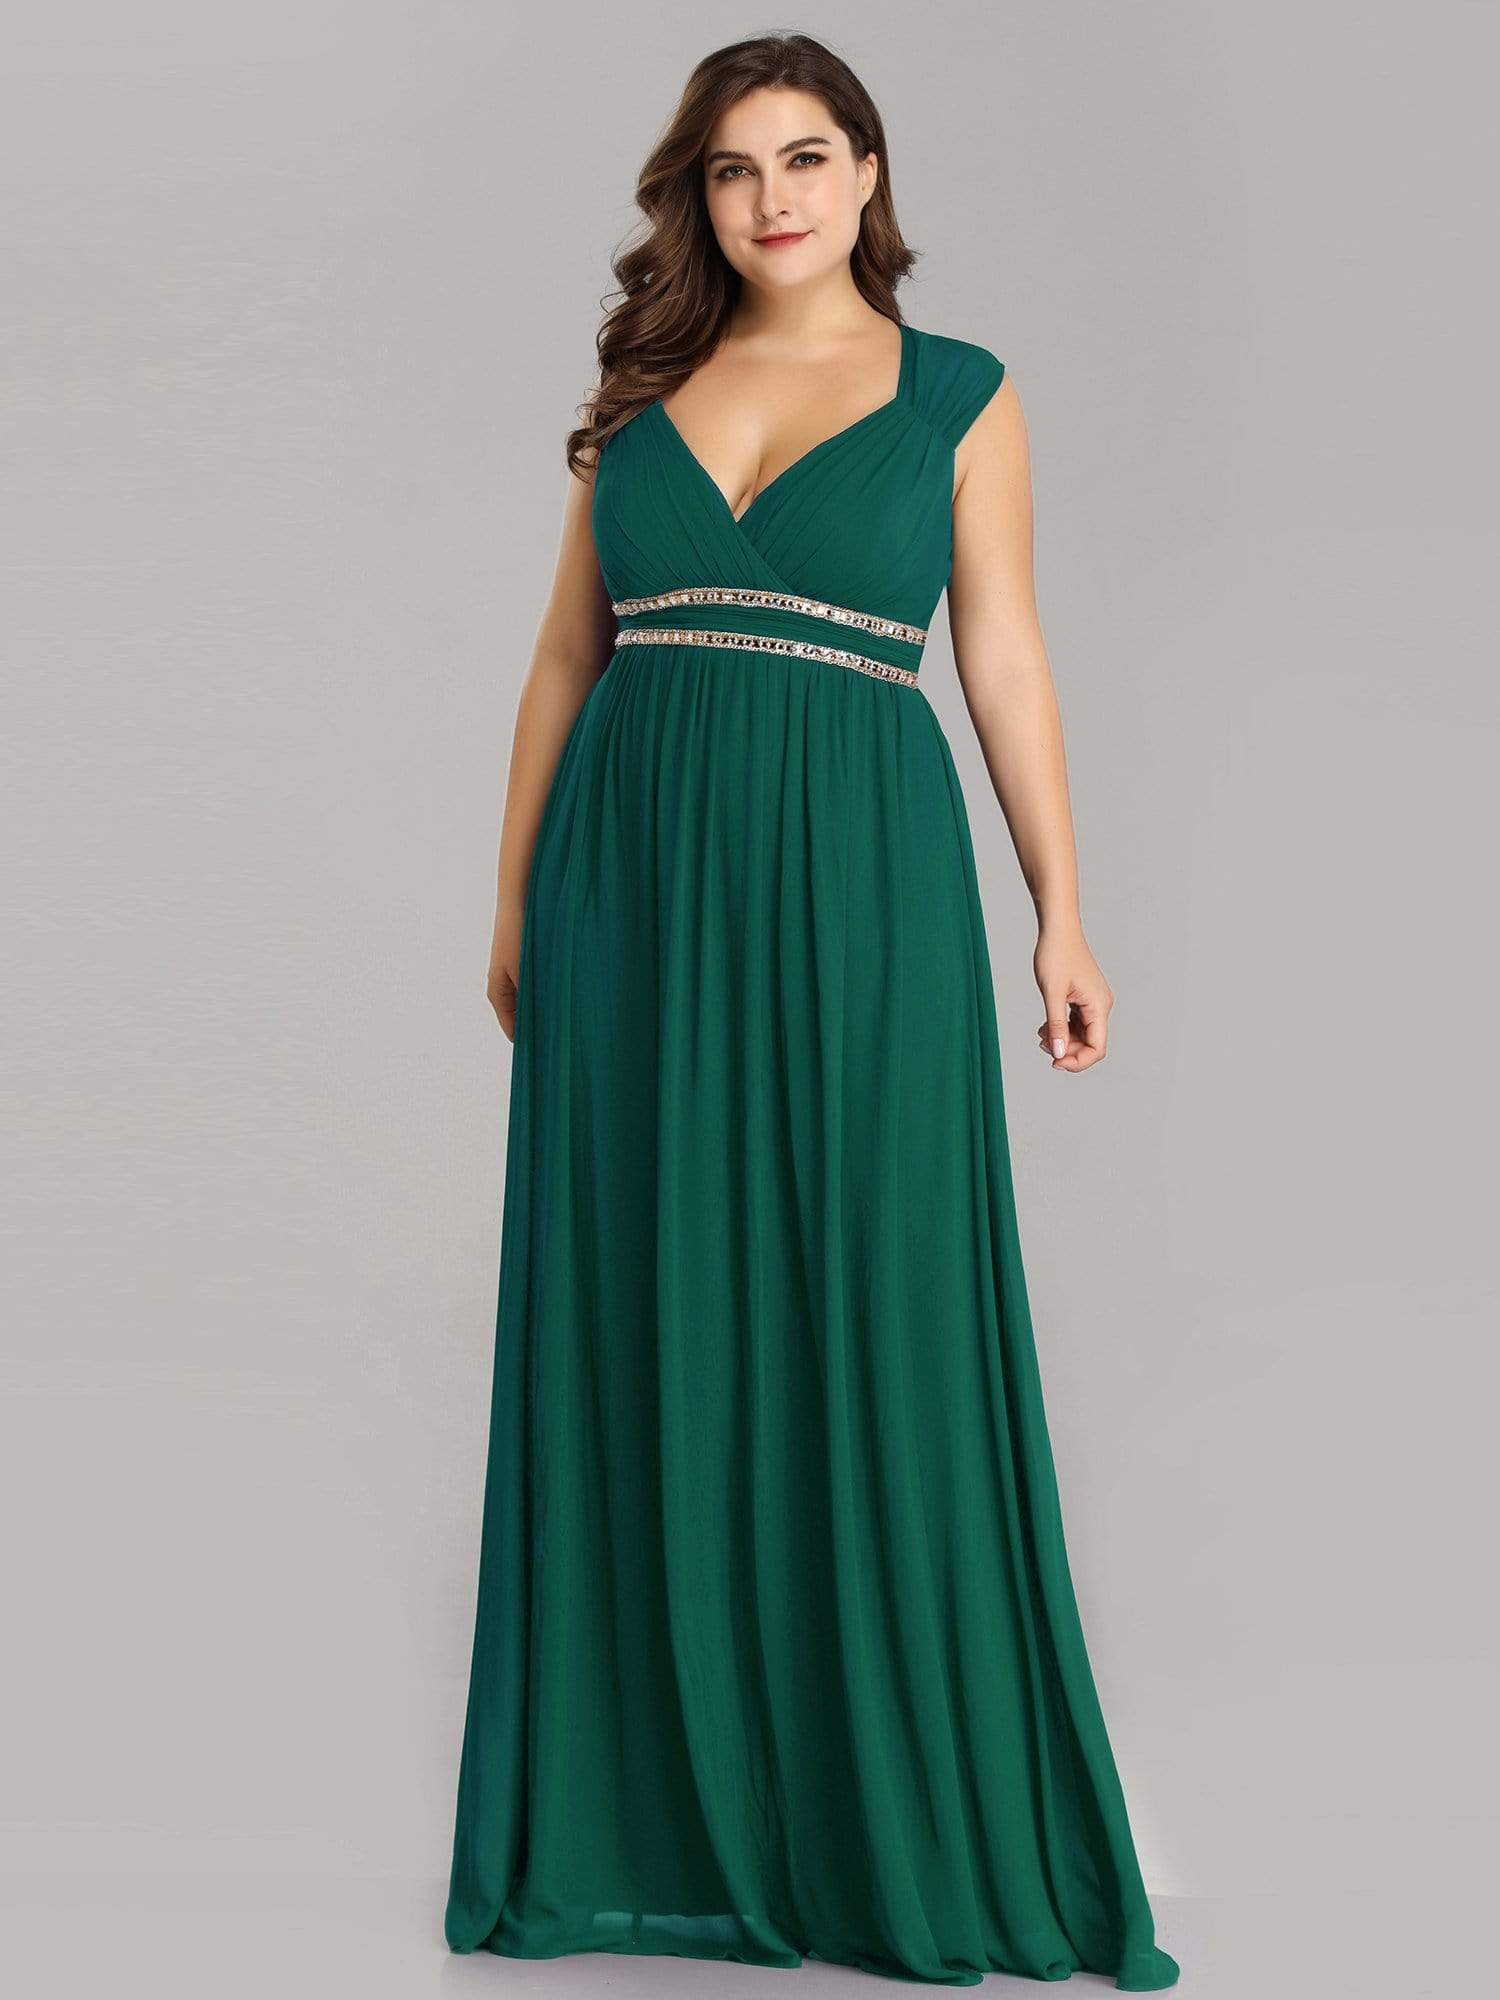 Tina bling cut out back chiffon bridesmaid dress in emerald green on sale s10-Bay Bridesmaid